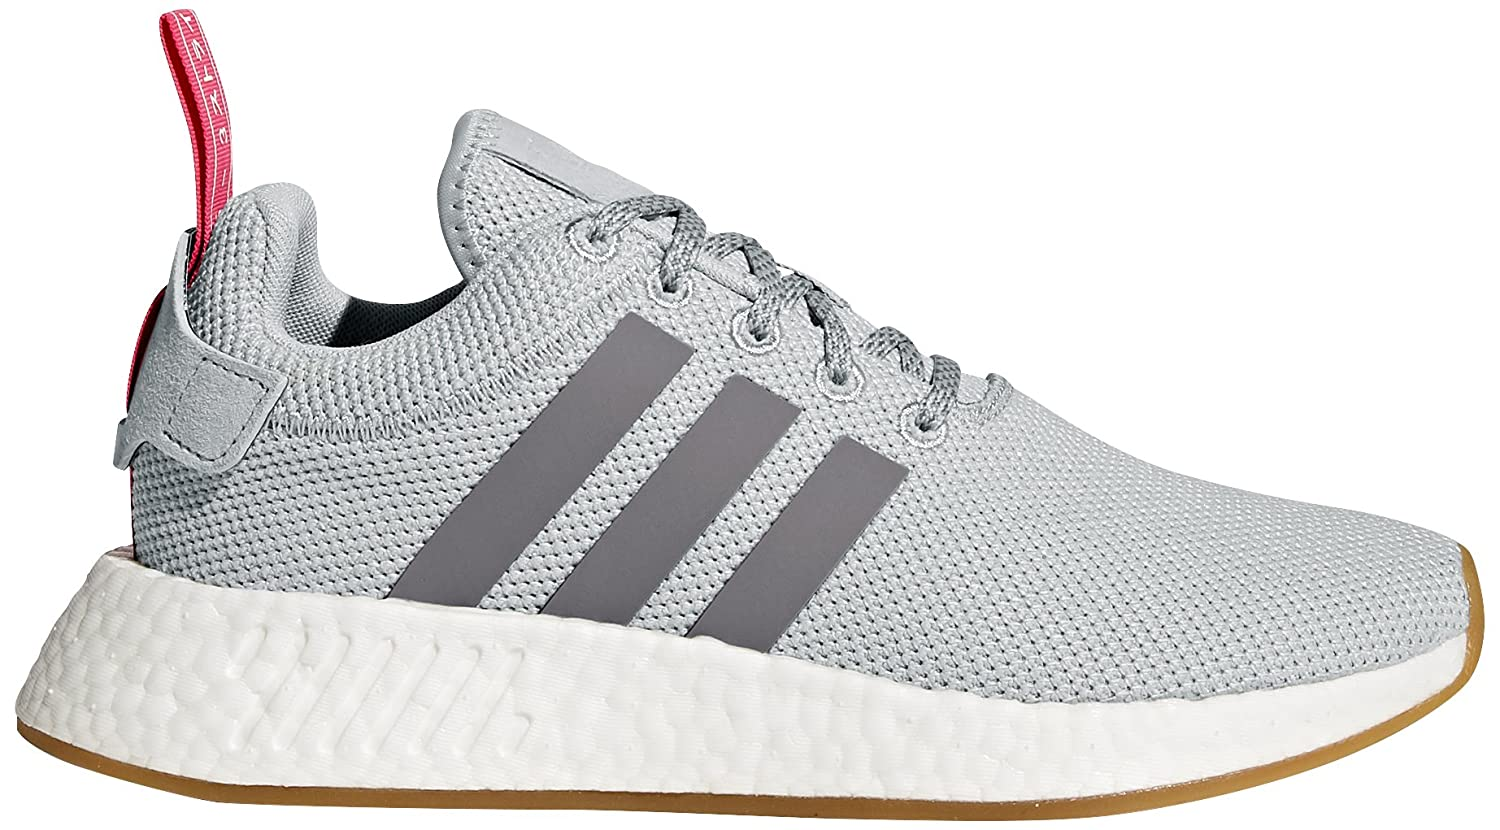 adidas Originals Women's NMD_r2 W Sneaker B06XPM96J5 5.5 B(M) US|Grey Two/Grey Three/Shock Pink